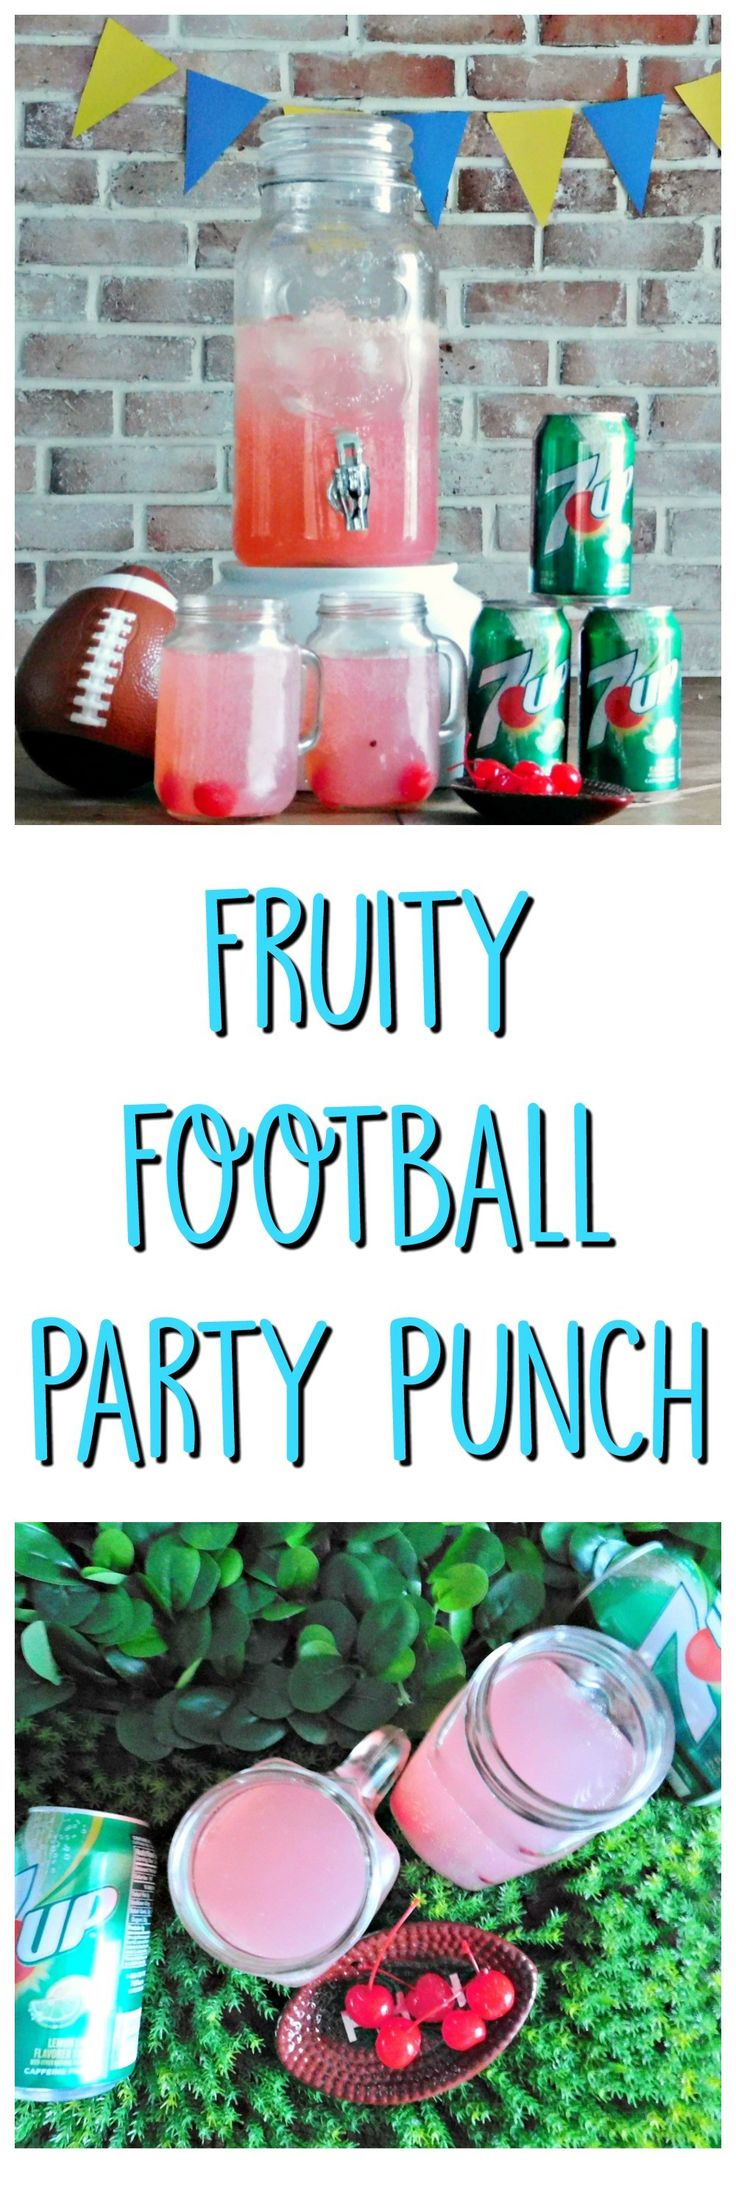 #ad msg 4 21+ #collectivebias #JustAdd7up. 7UP Fruity Football Party Punch. This alcoholic party punch is sure to be a favorite with your guests. Mix 7UP with pink lemonade, vodka and triple sec.